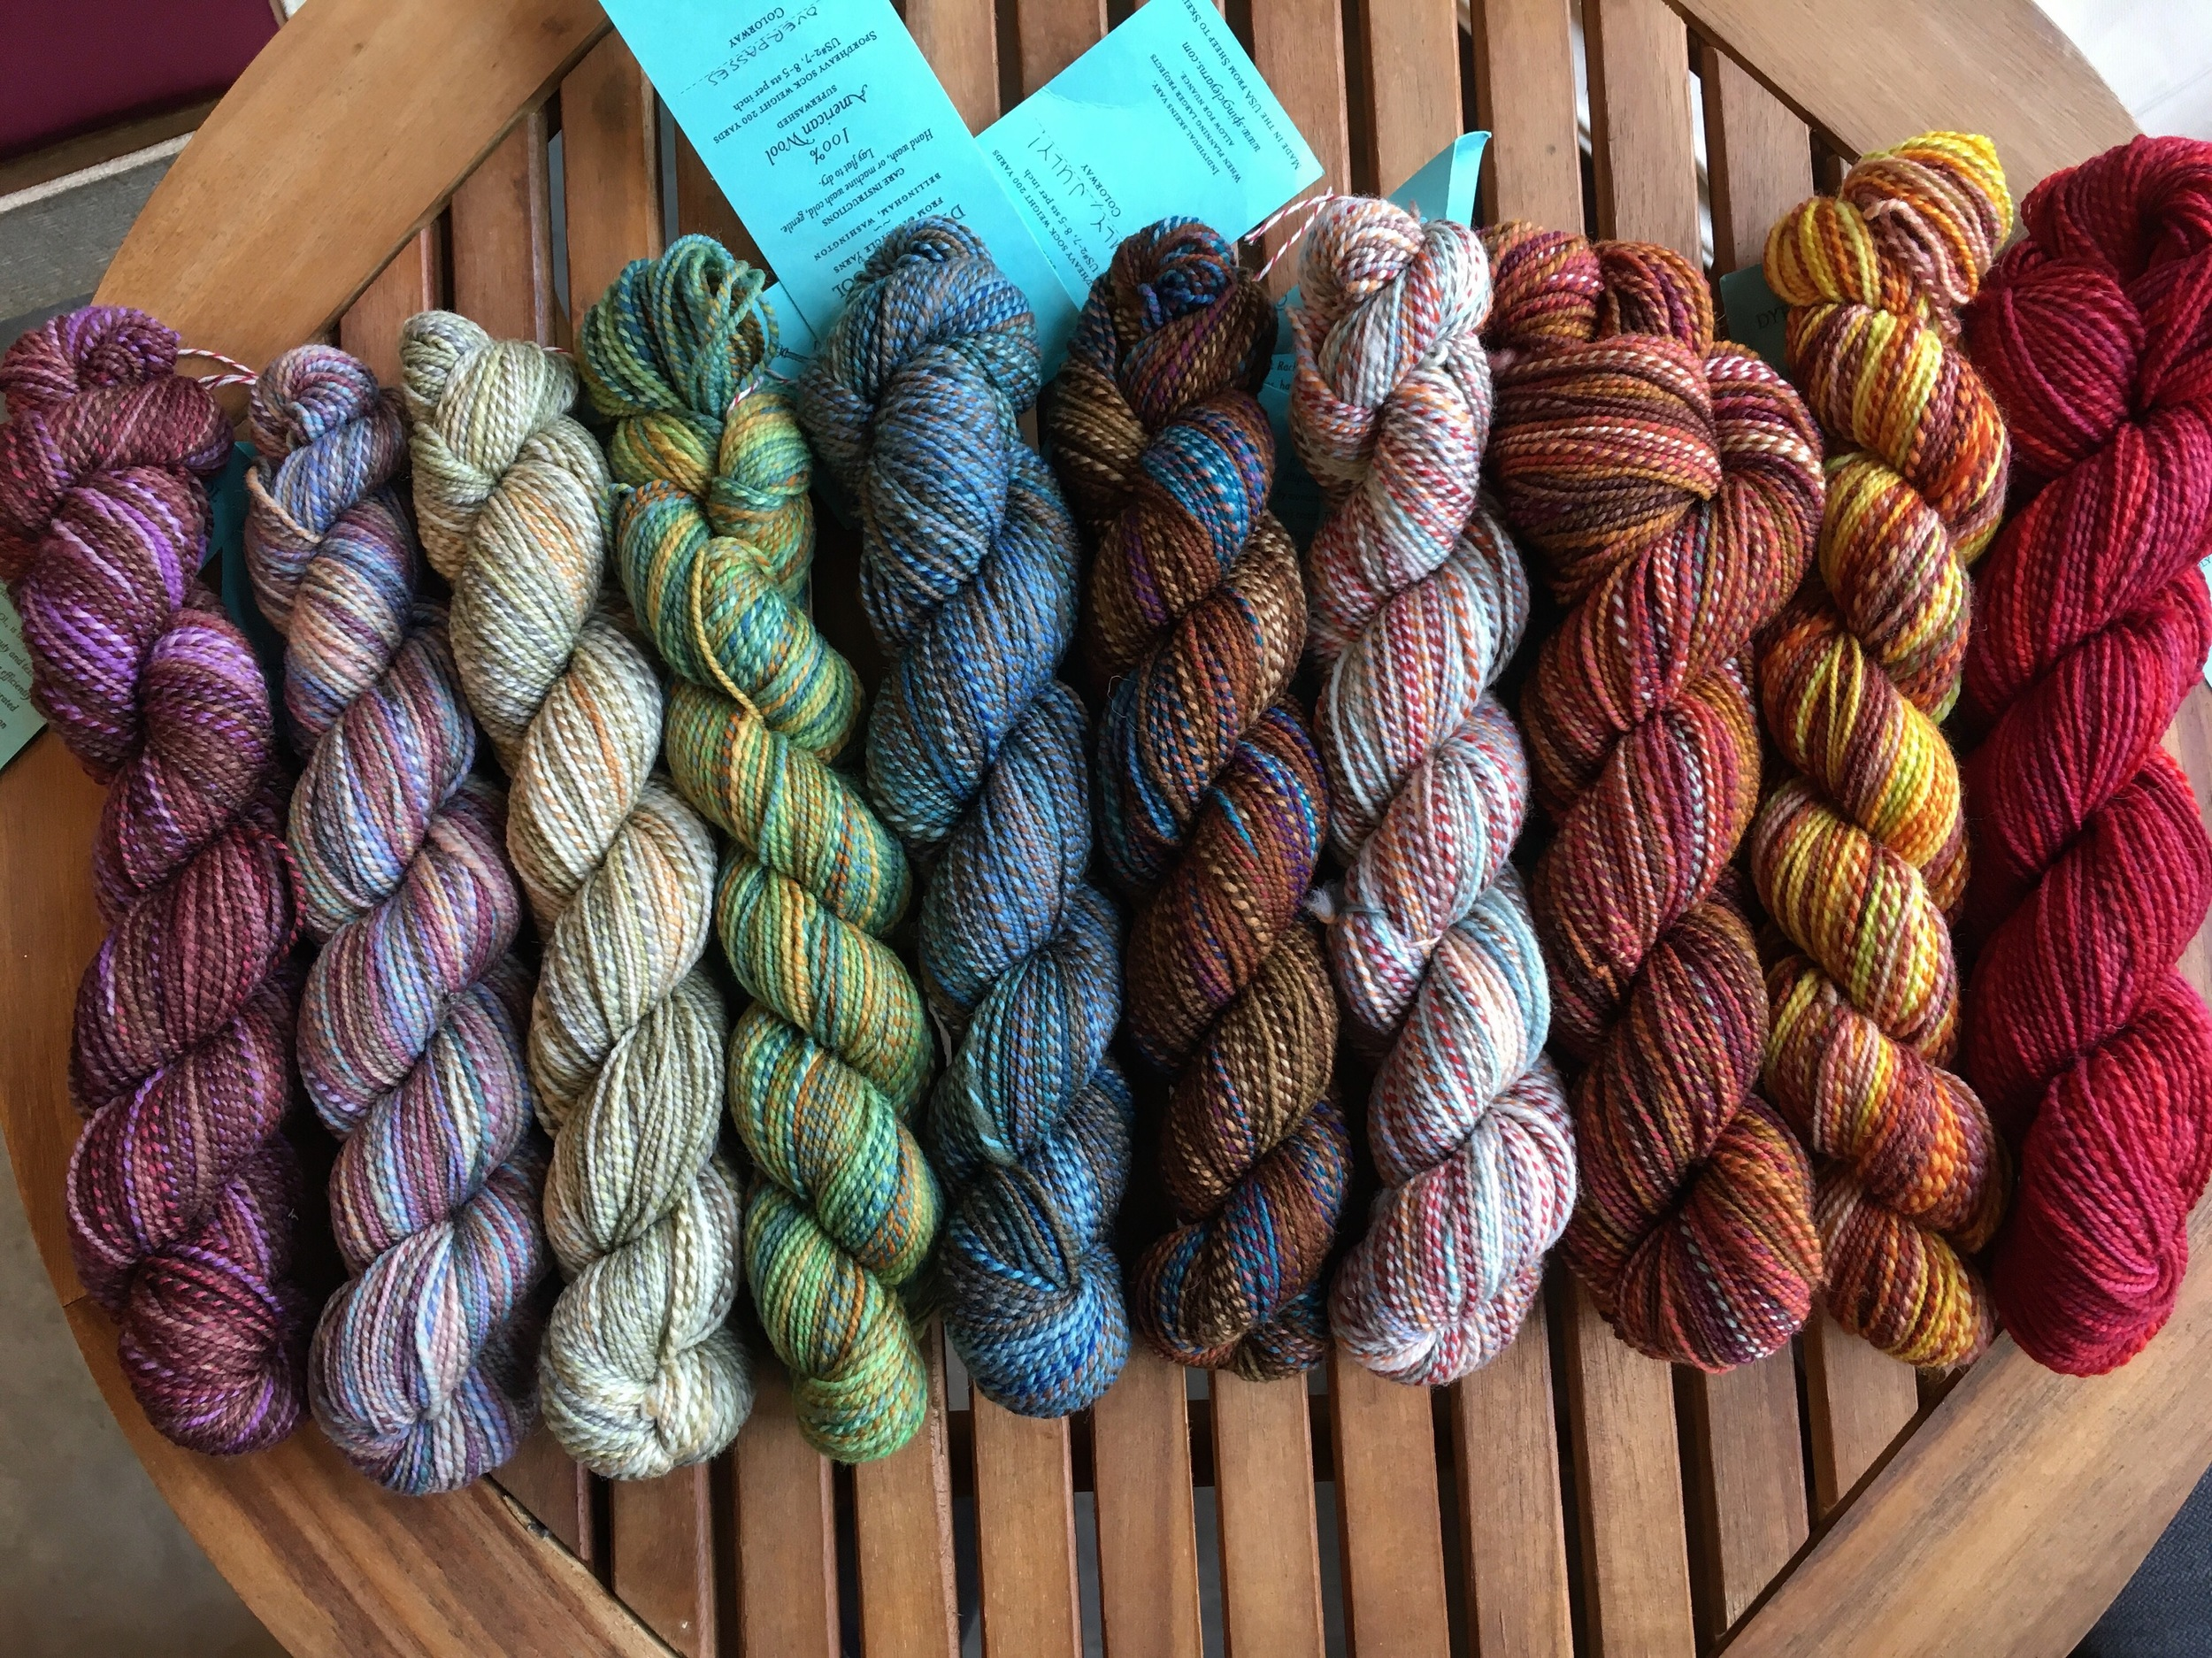 Sweet little skeins of Dyed in the Wool by Spincycle Yarns. Can you choose a favorite?